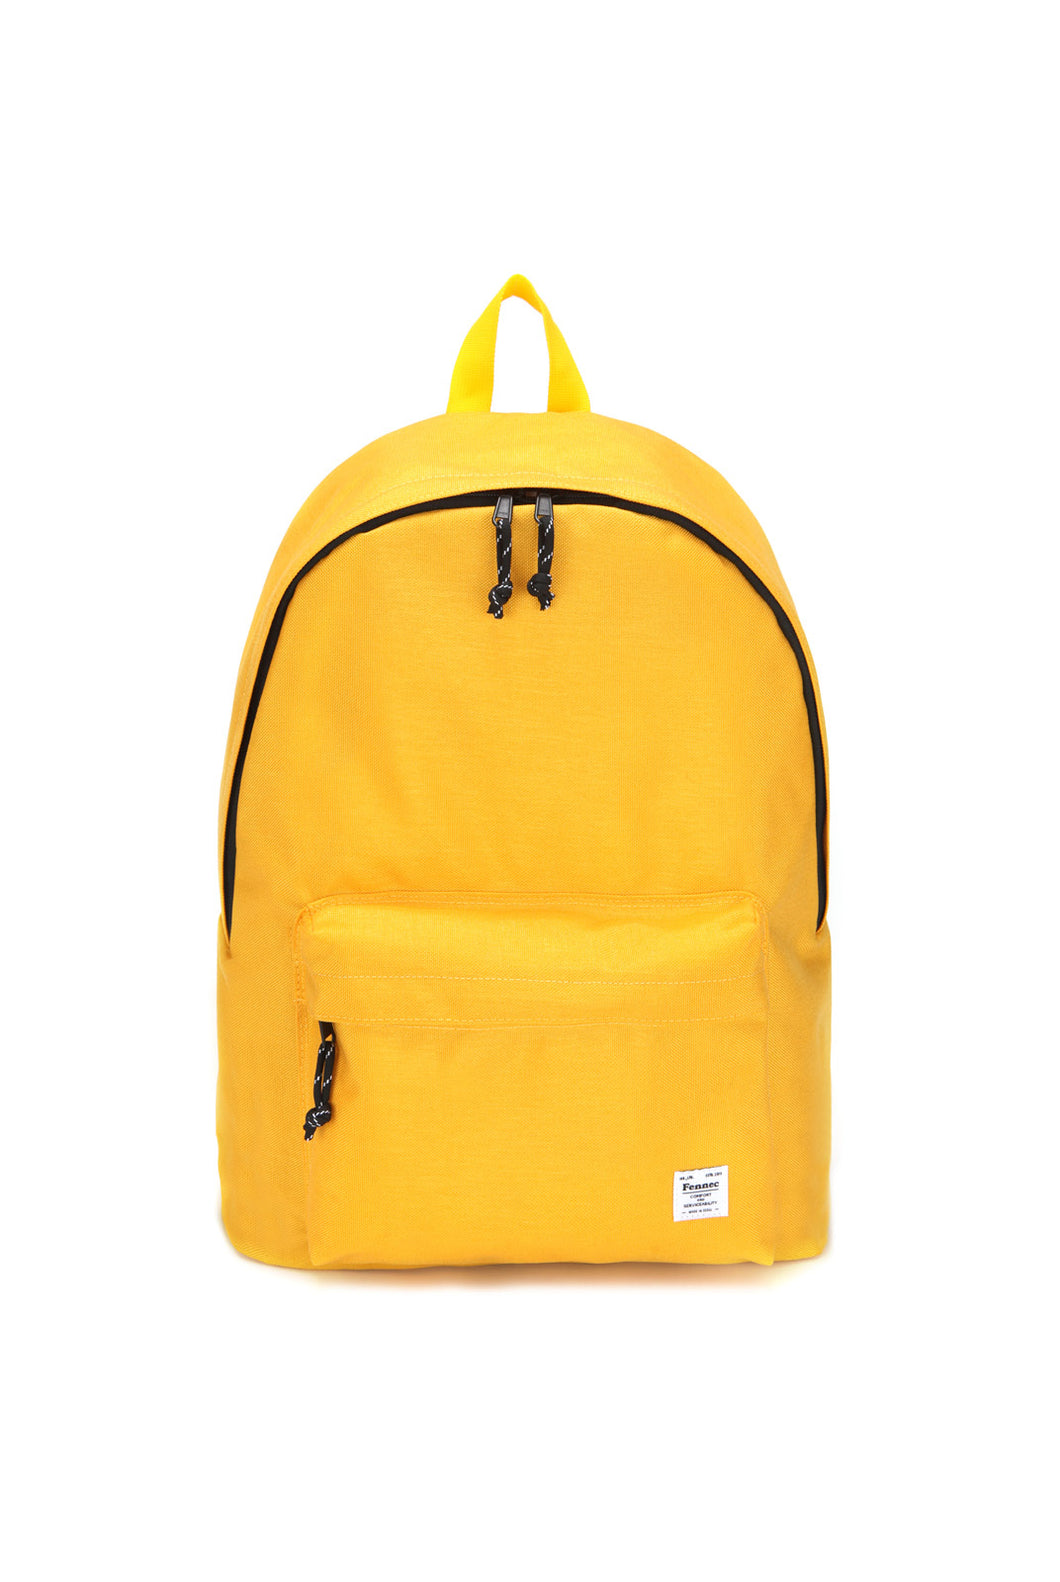 Fennec - C & S - Backpack - Yellow